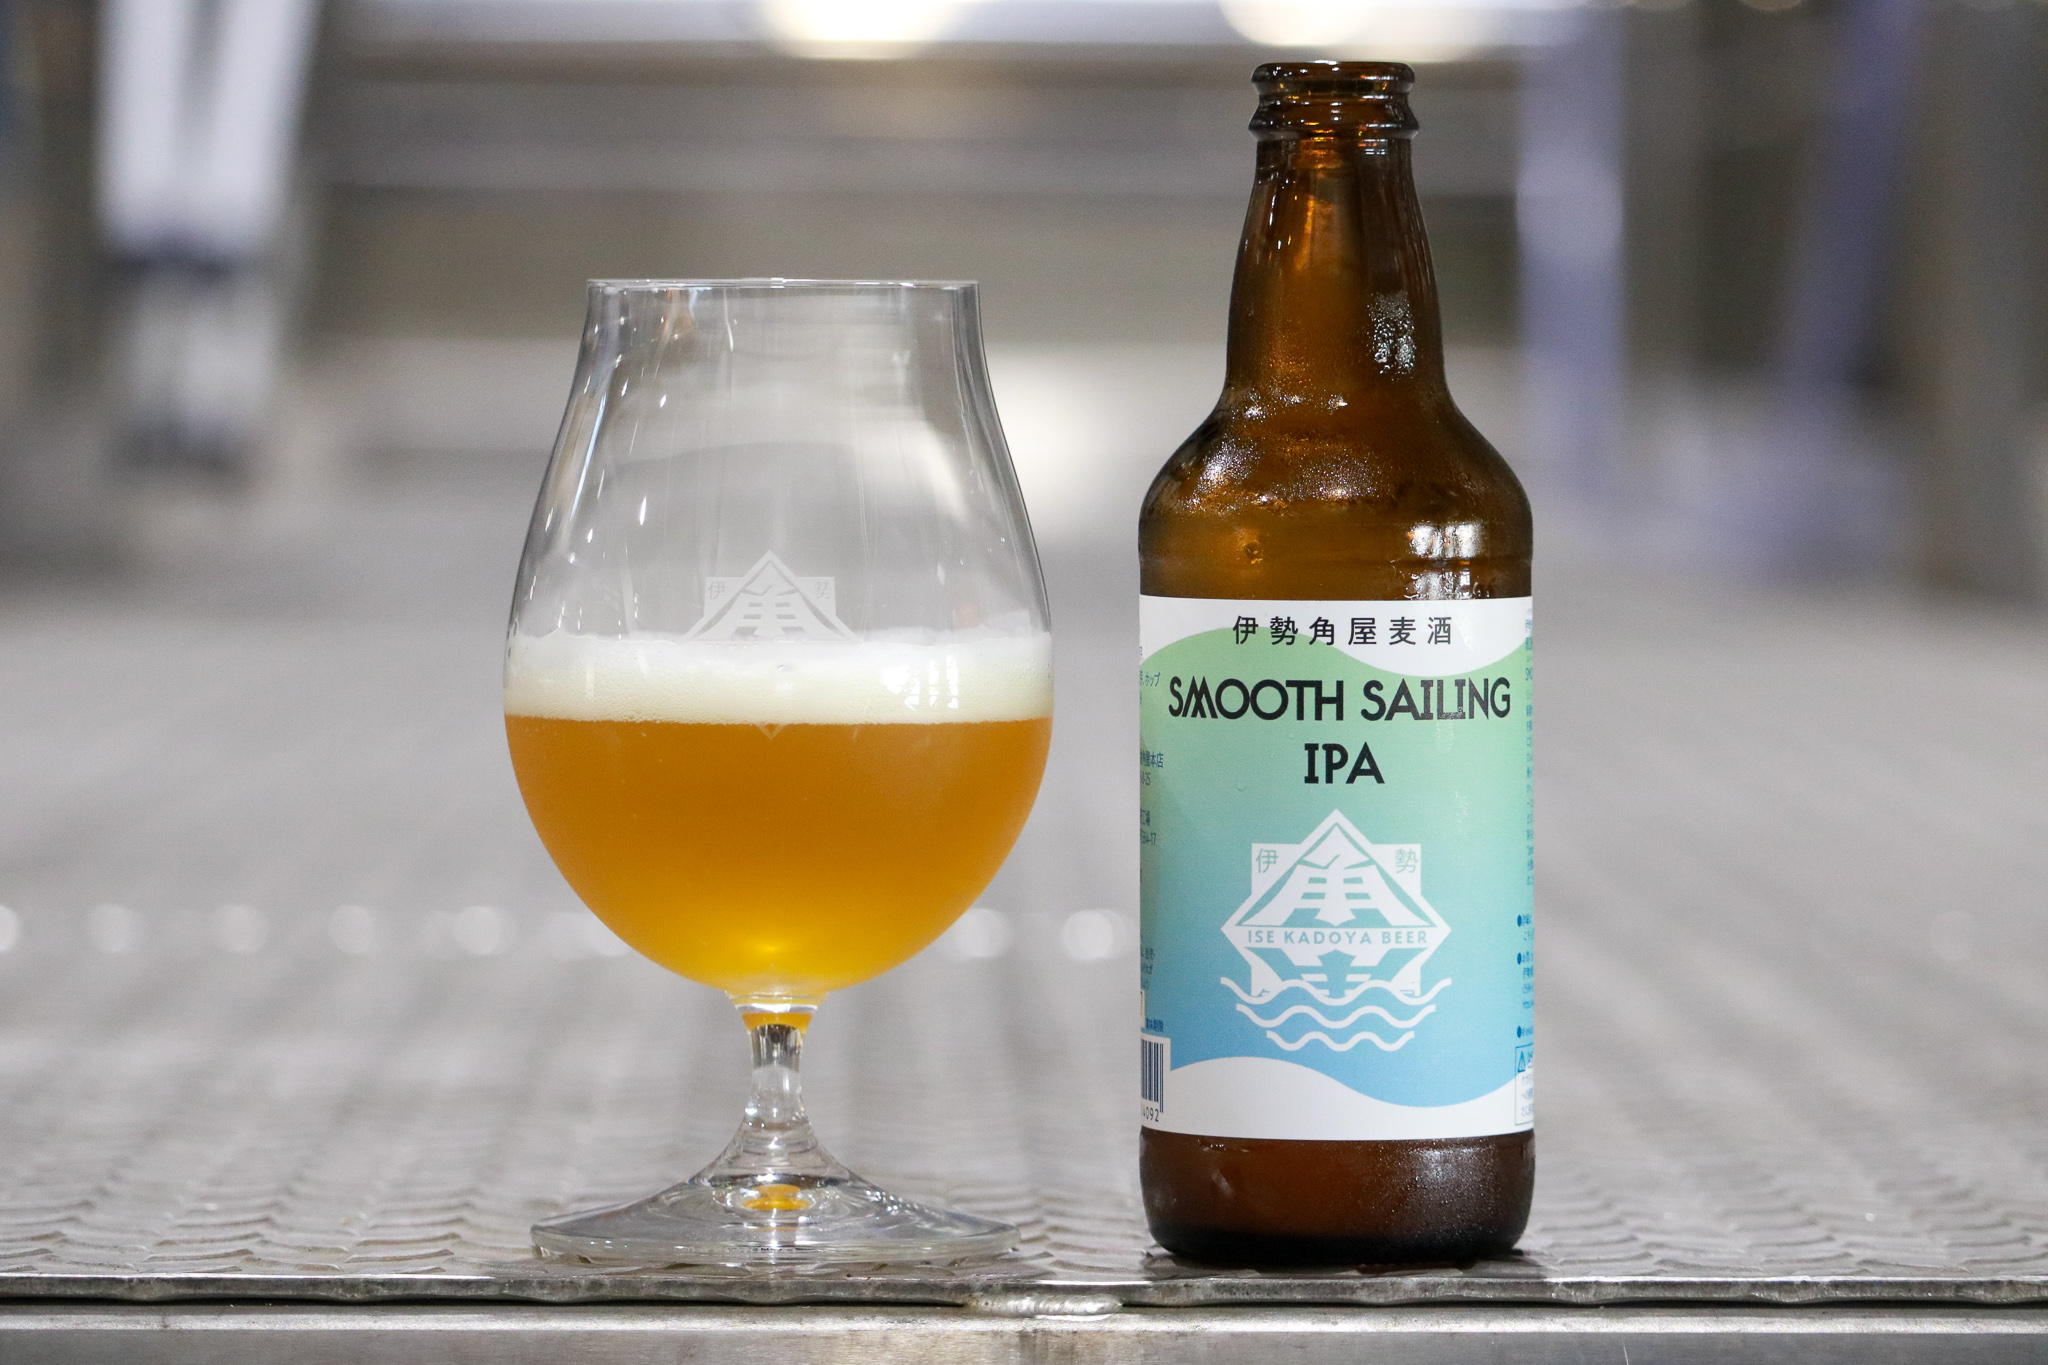 Smooth Sailing IPA